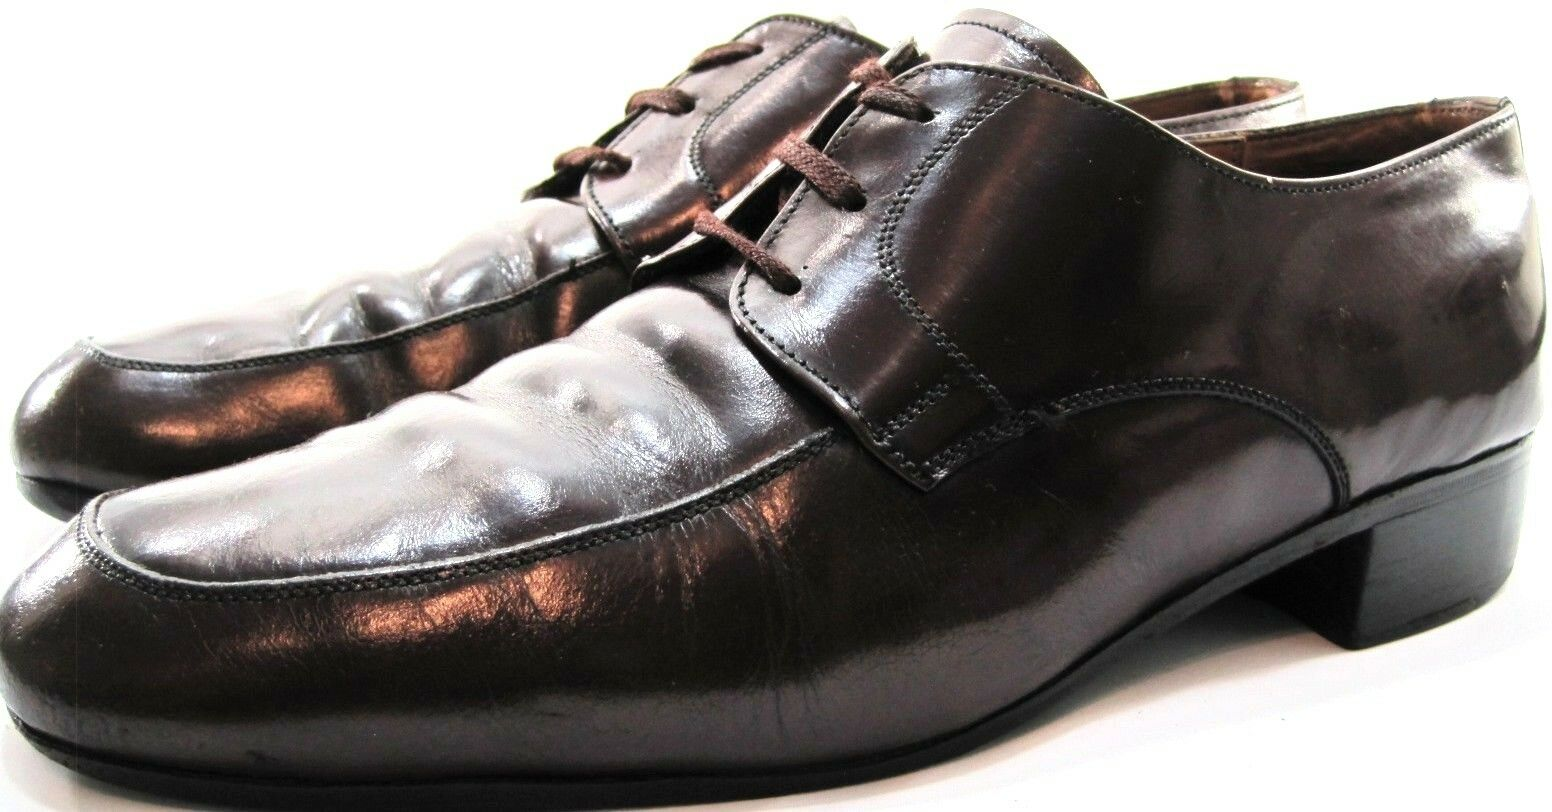 Manhattan Uomo Leather Oxford Shoes Size Style 10 Euro 43 Brown Style Size 6235 Leather 8e5651